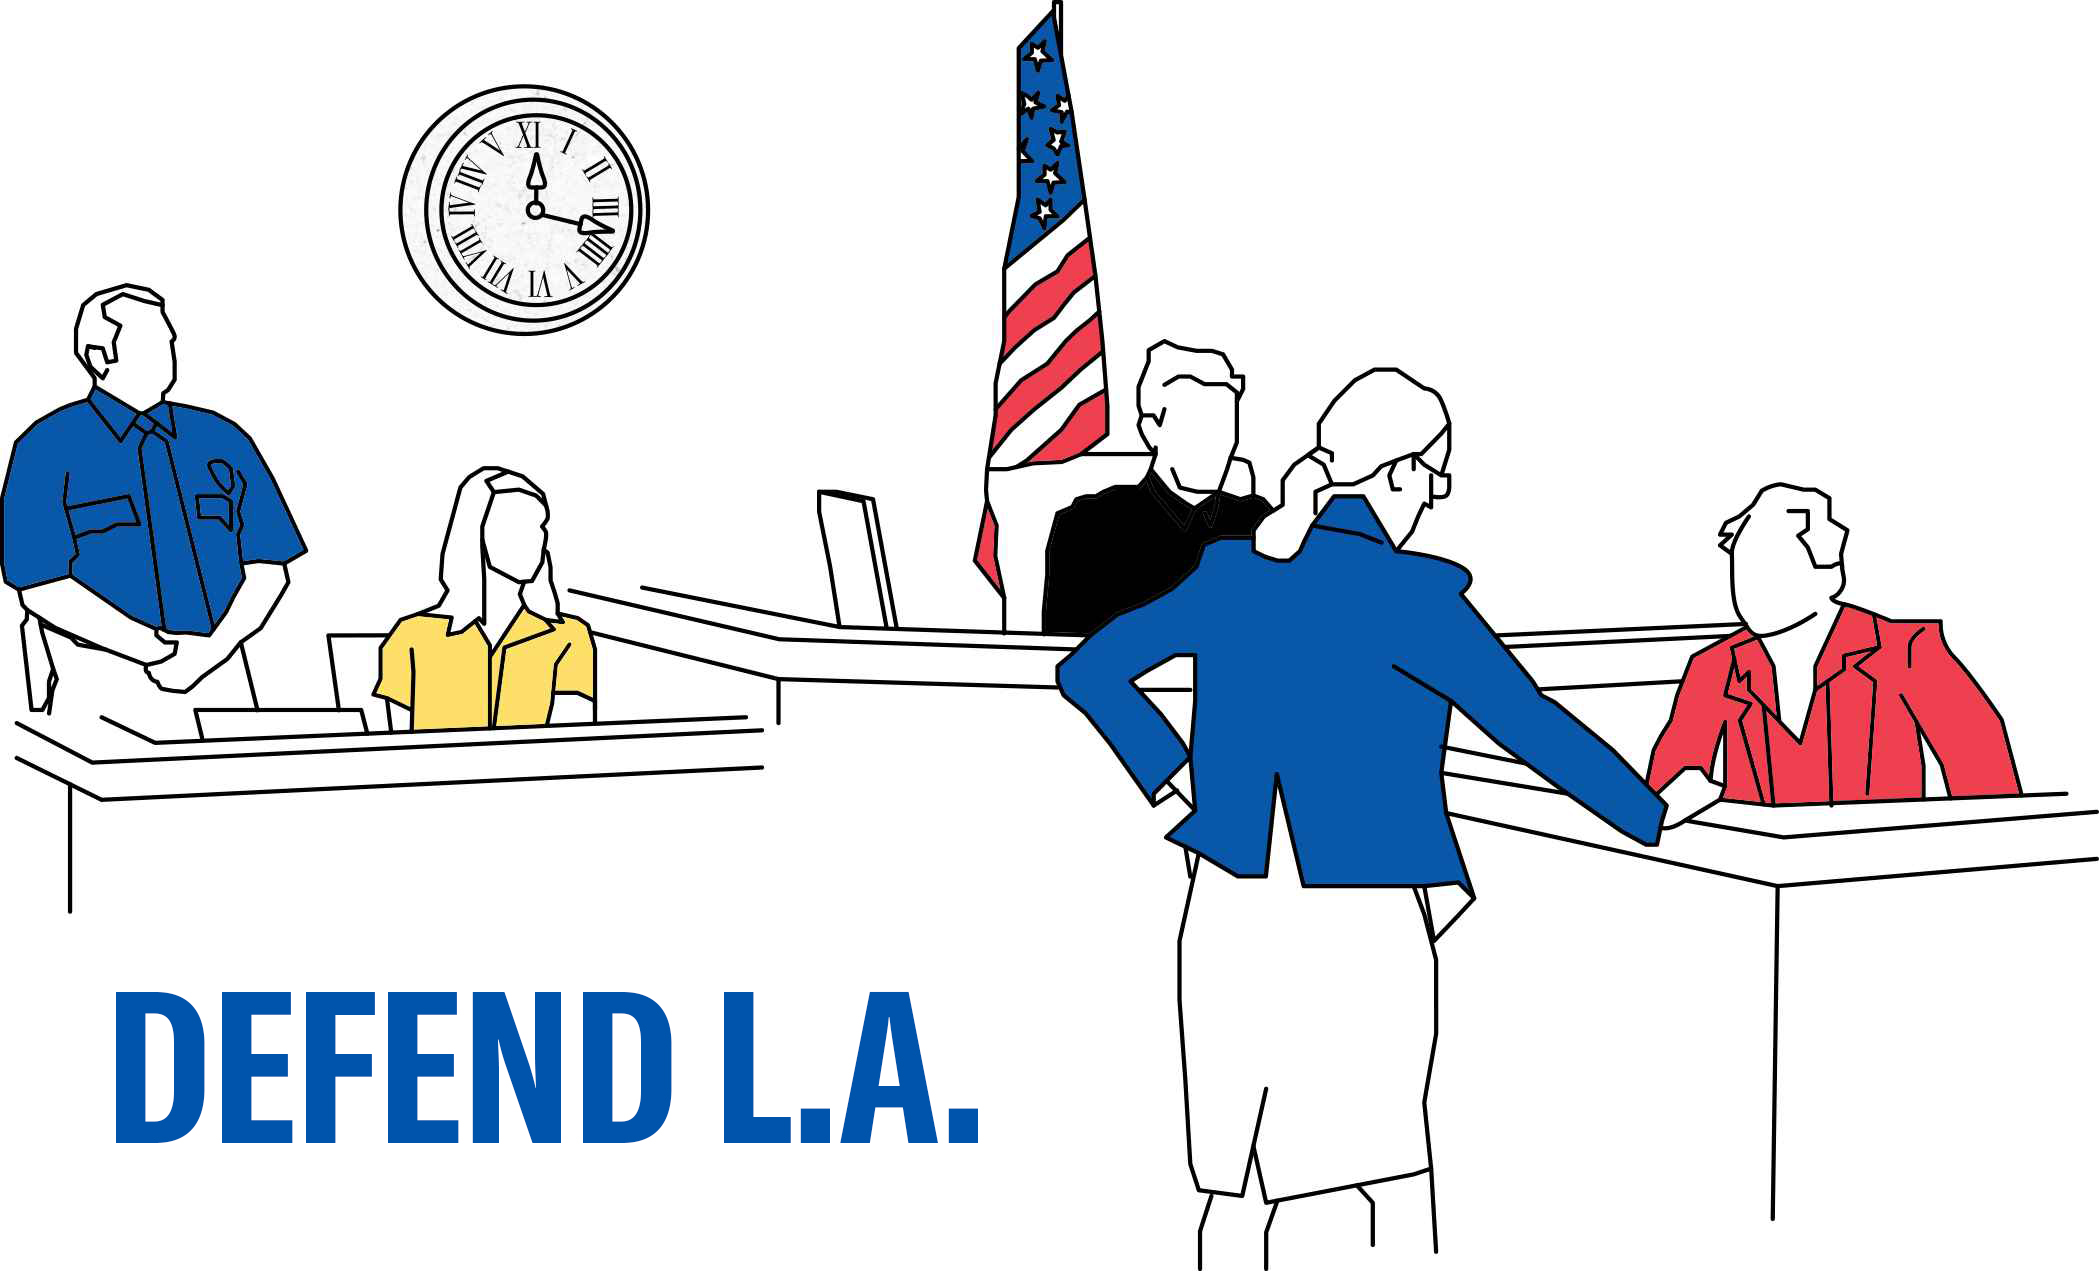 Defend LA - sketch of people in a courtroom, including a judge, a defendant, an attorney, a bailiff, and a court reporter